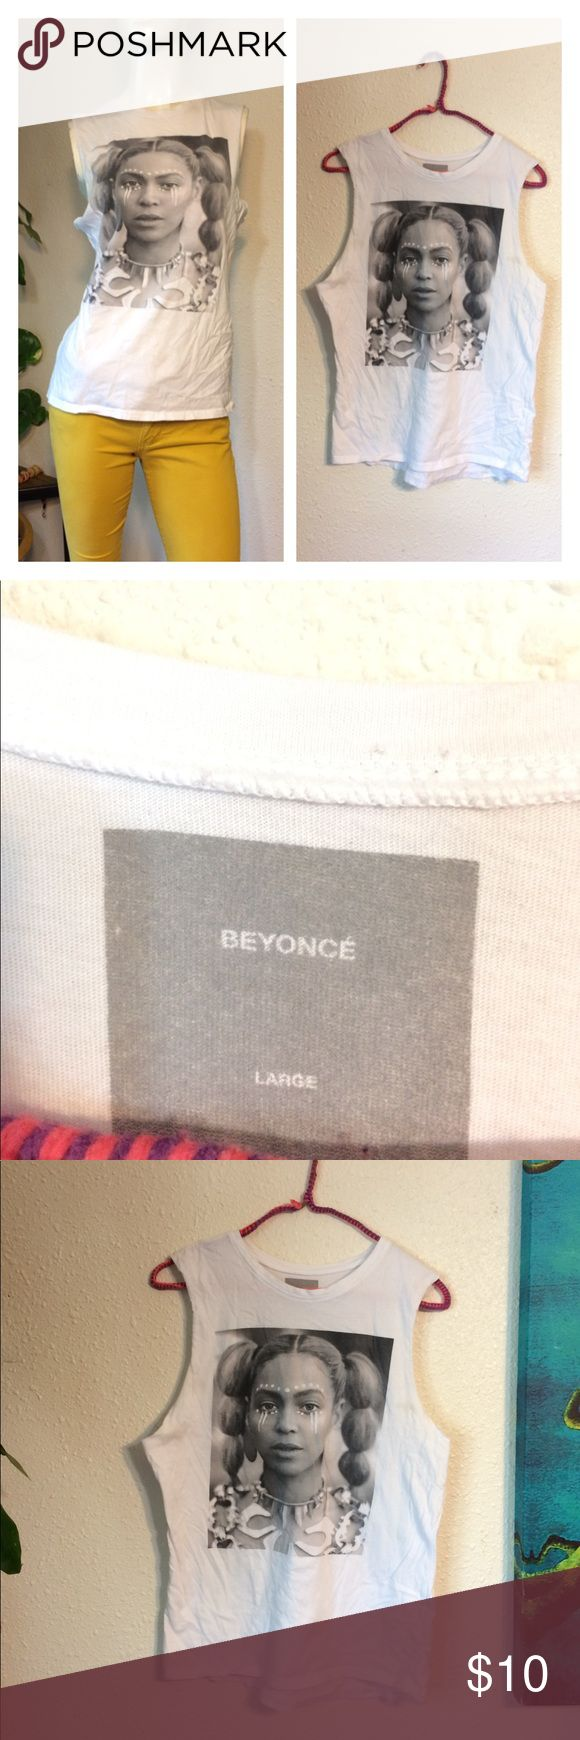 Beyoncé  Shirt marked large but fits more like medium - some kind of stain near underarm - bought it used that way from plato closet i think (posh only) Tops Muscle Tees